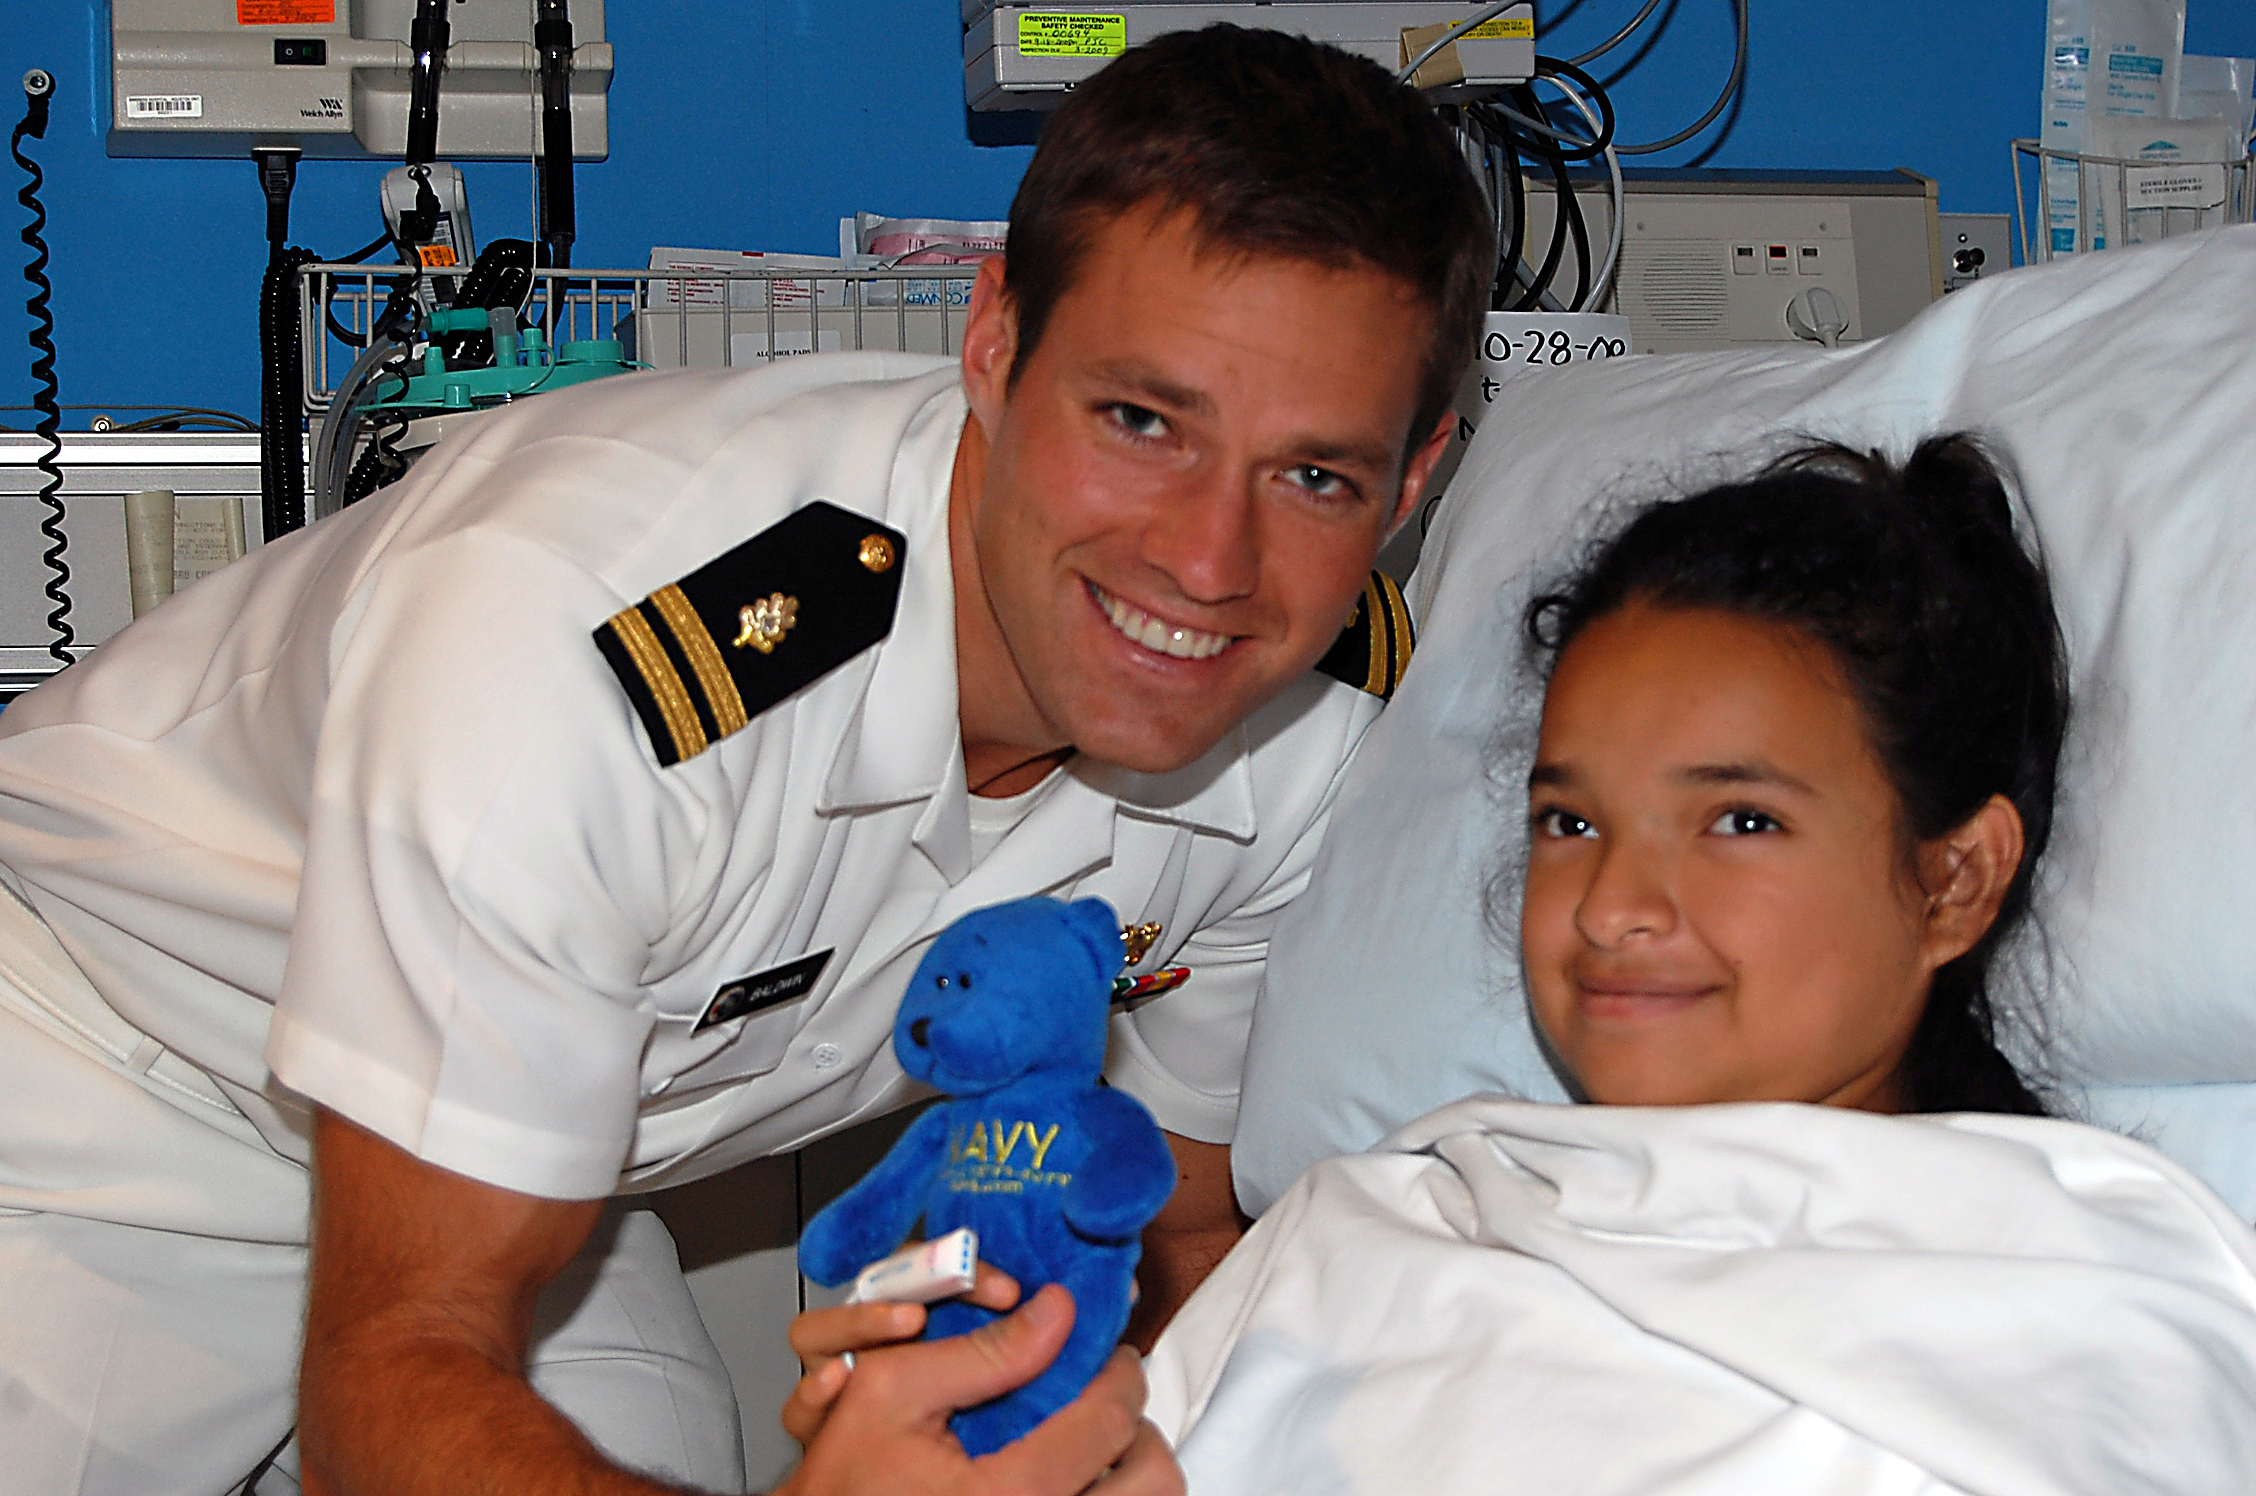 us navy 081106-n-8390s-016 lt. andrew baldwin, m.d., assigned to the navy bureau of medicine and surgery, makes this patient and honorary sailor at shriners hospital houston.jpg